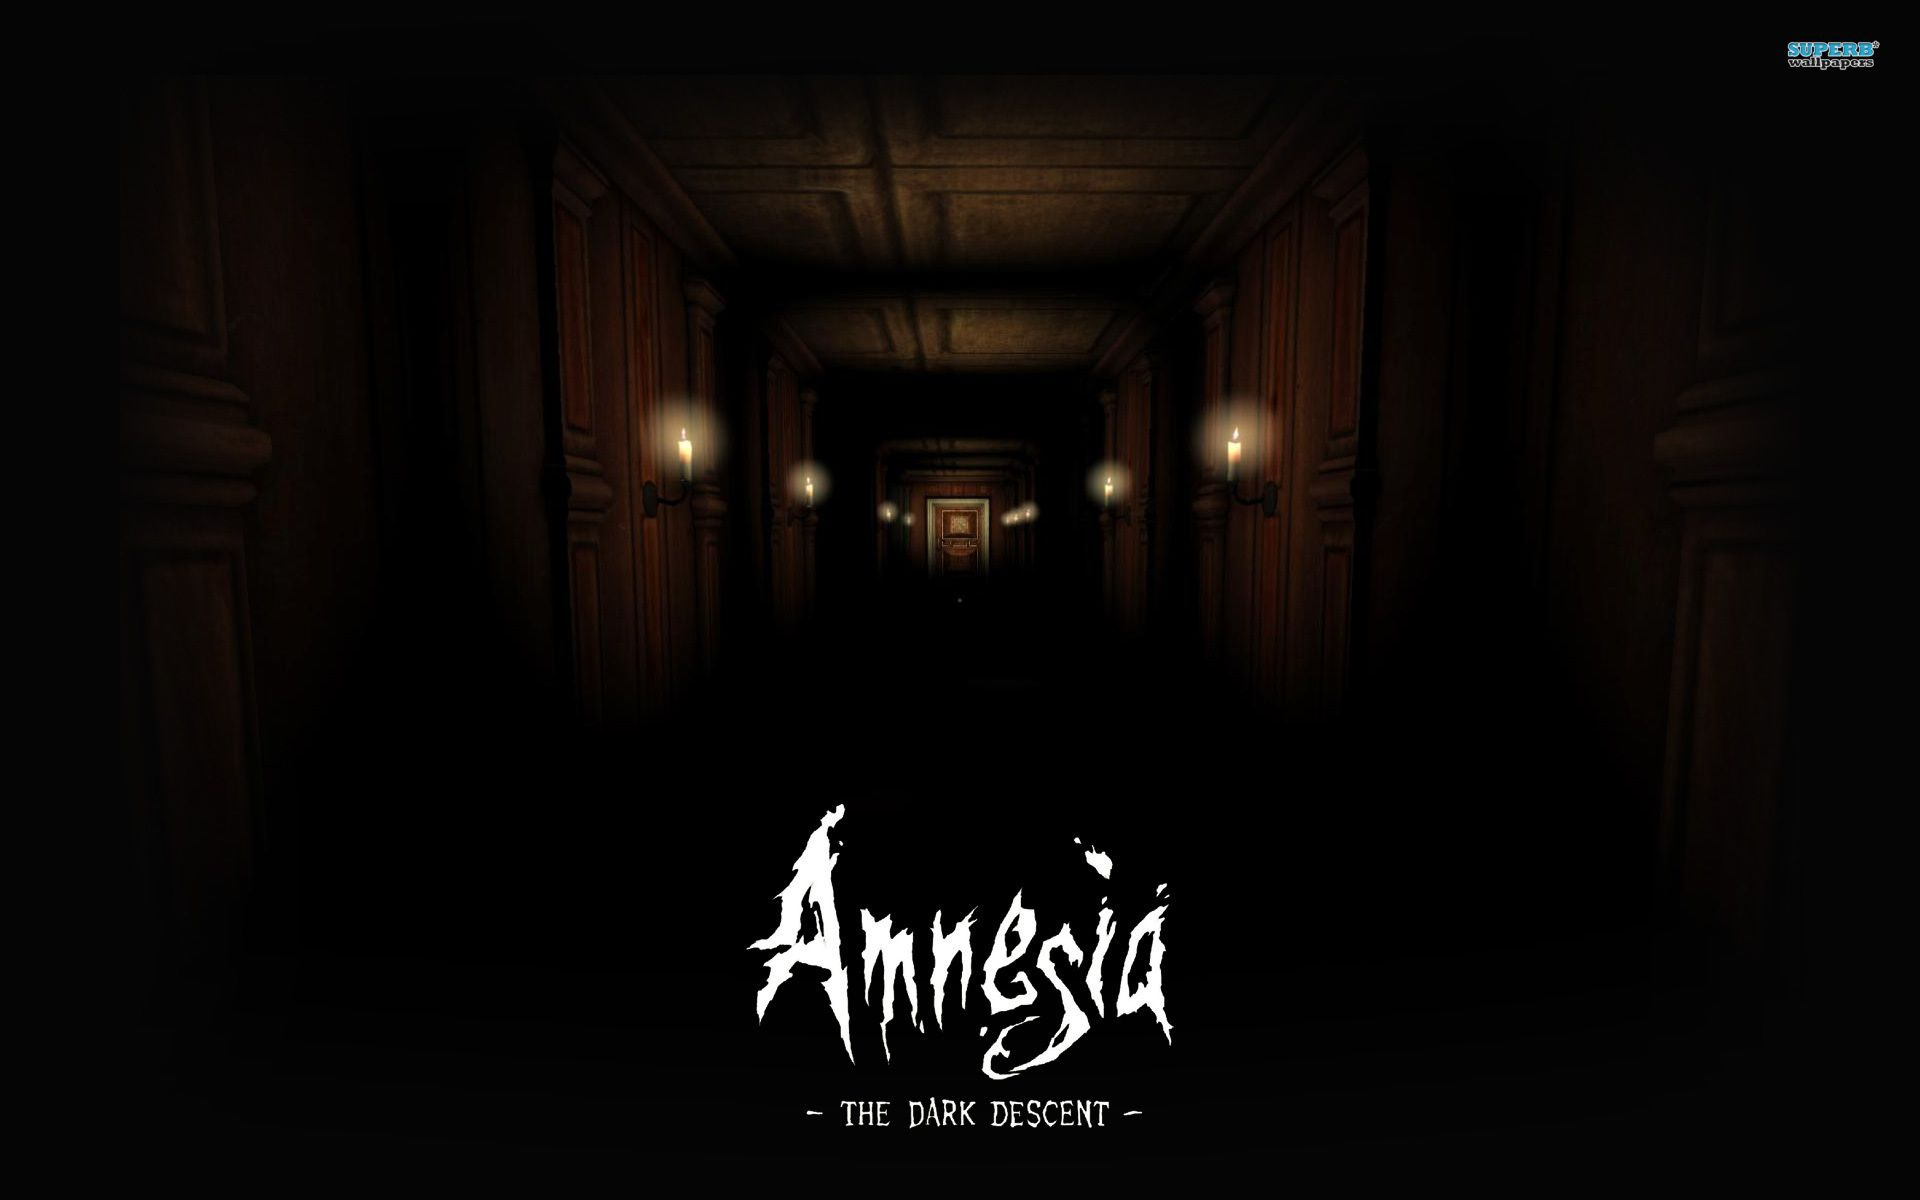 Download Bright Amnesia Pictures 29 High Resolution Wallpapers 1920x1200